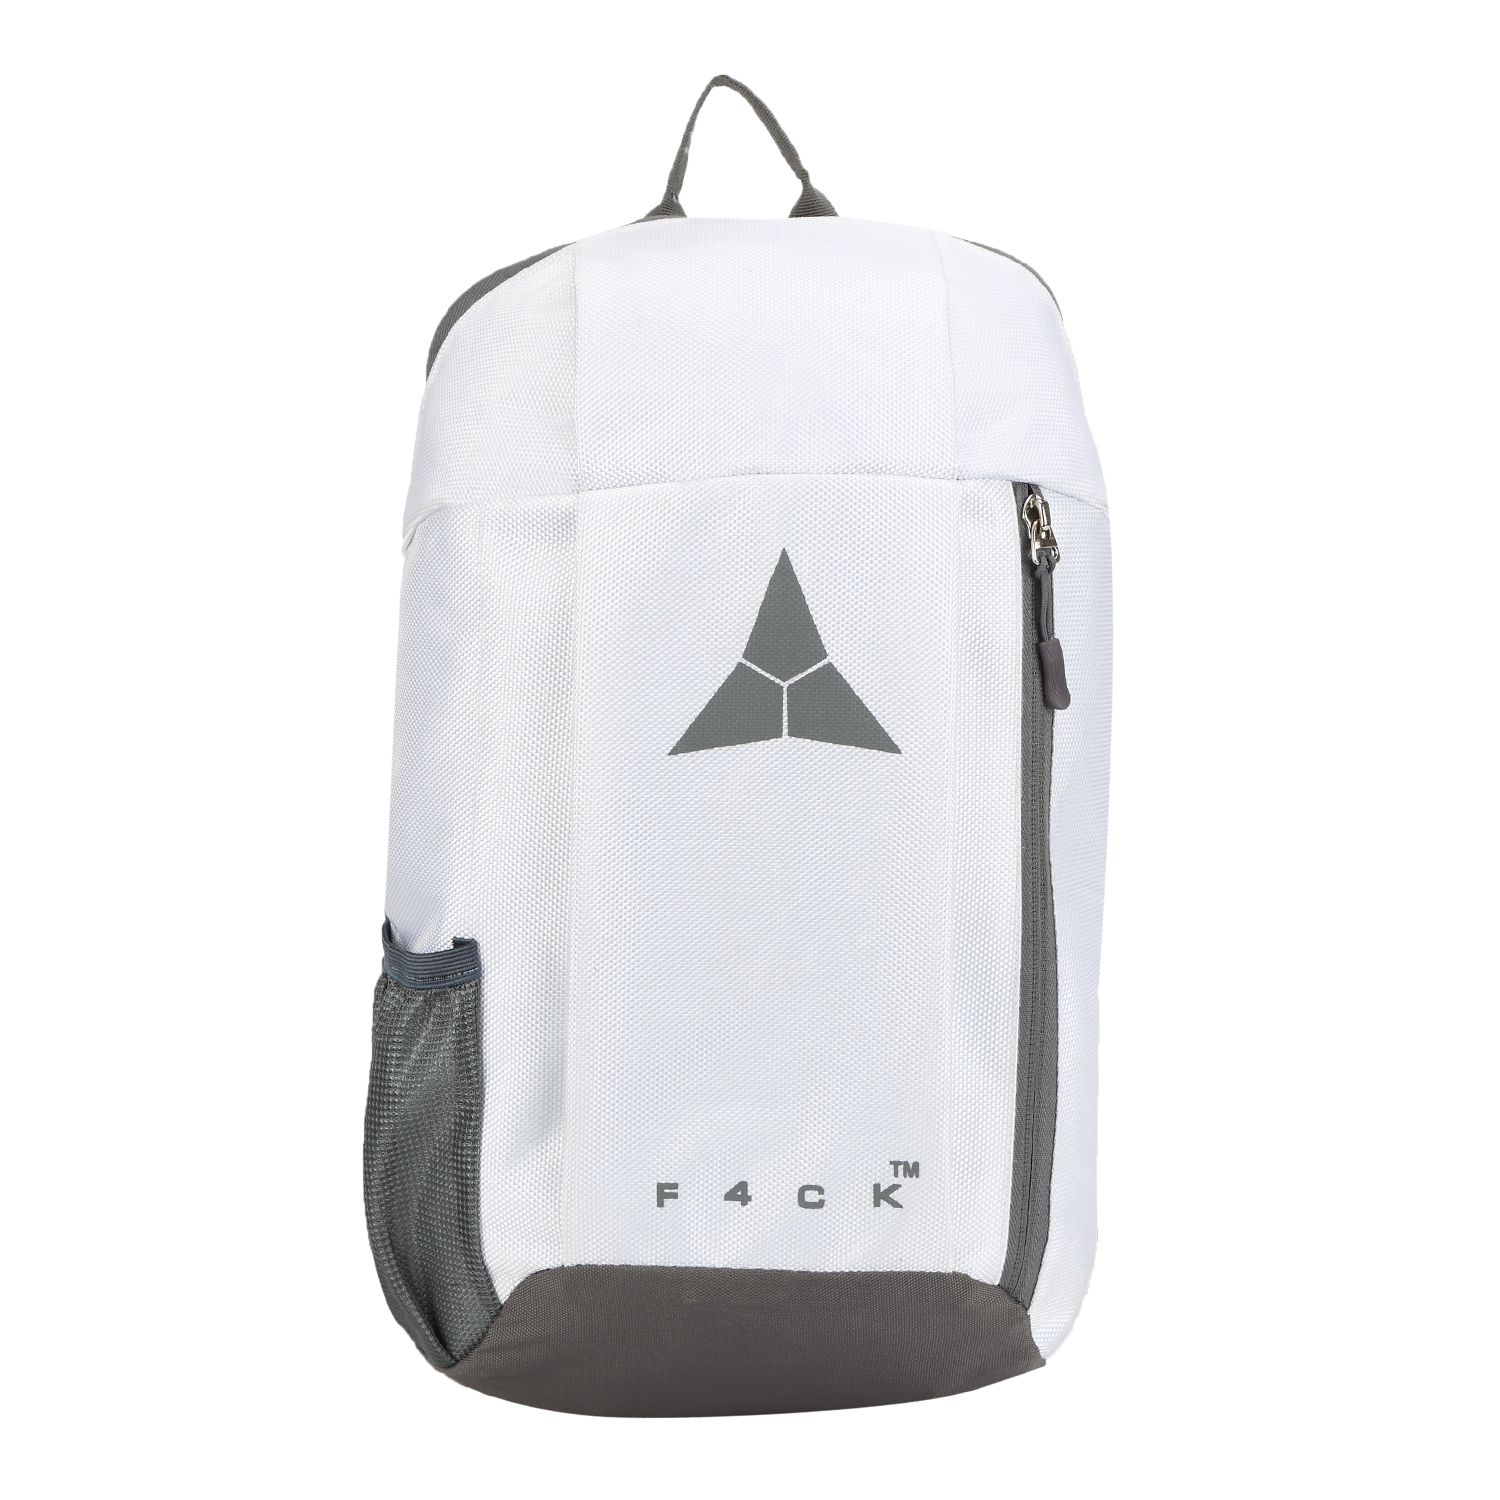 b5e332ce2bfb Best Online Shopping Site For Backpacks- Fenix Toulouse Handball